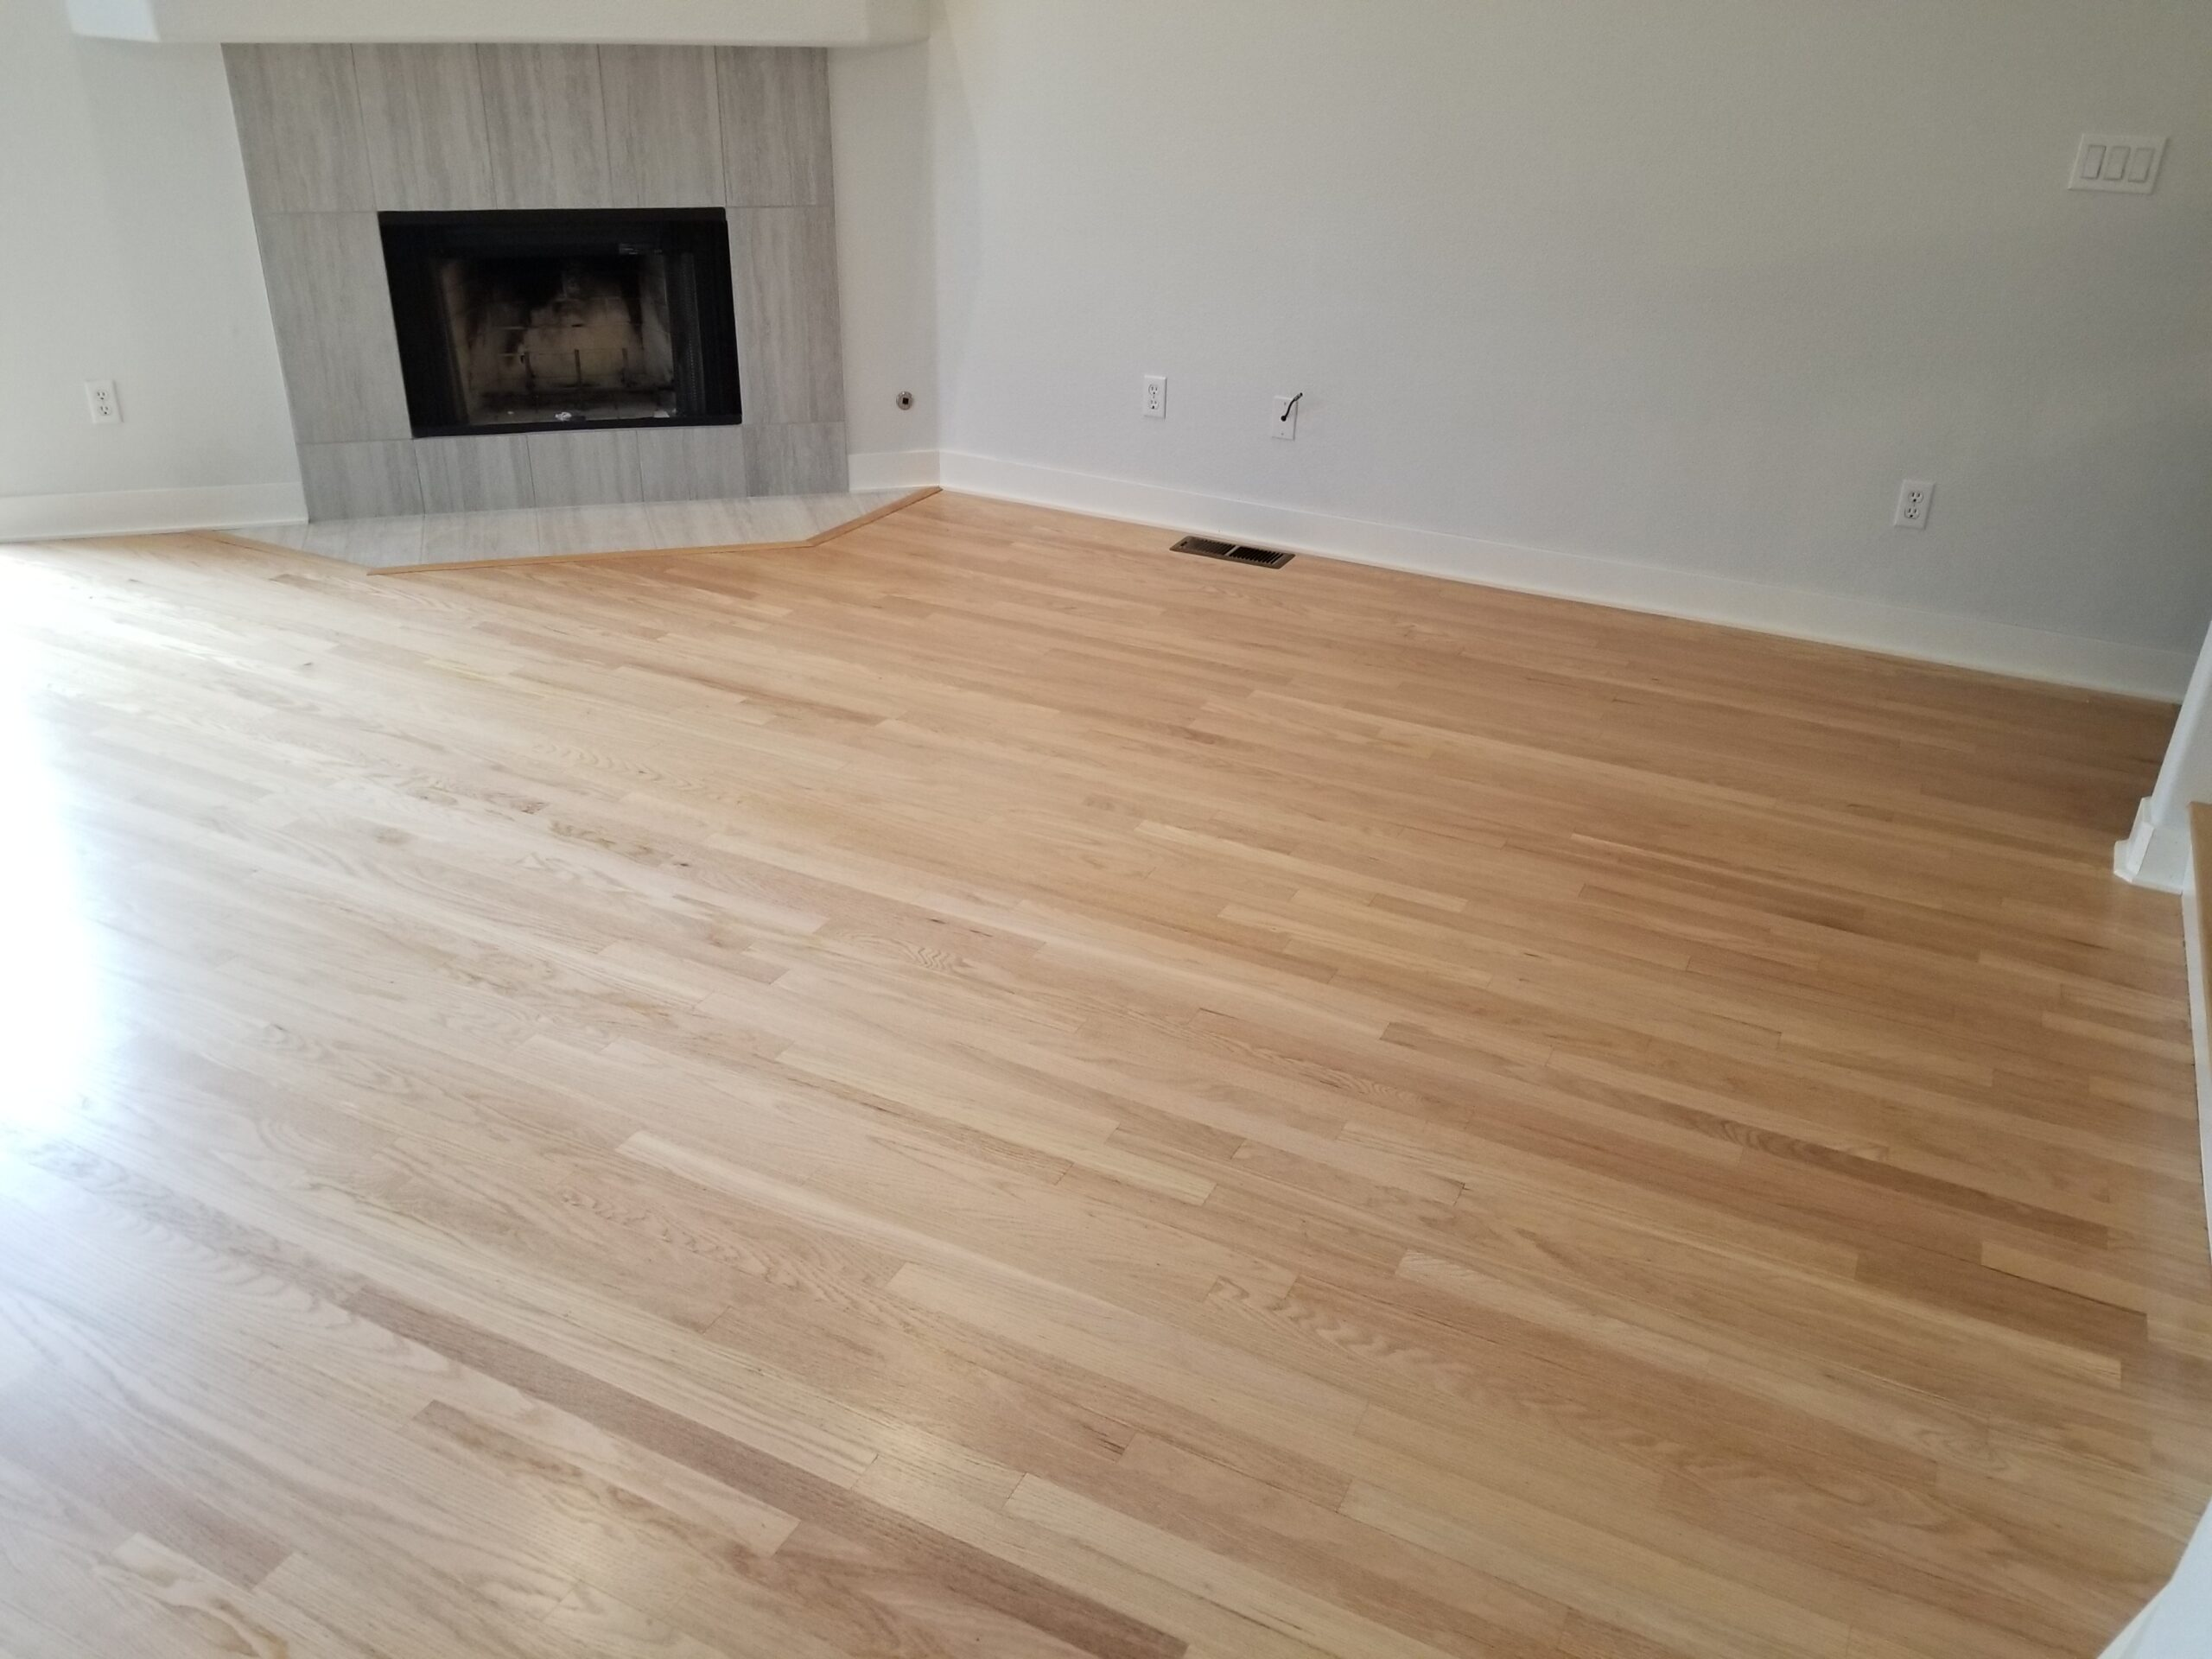 After  refinishing family room, Sunnyvale 1600 total square footage Sunnyvale townhouse.  .